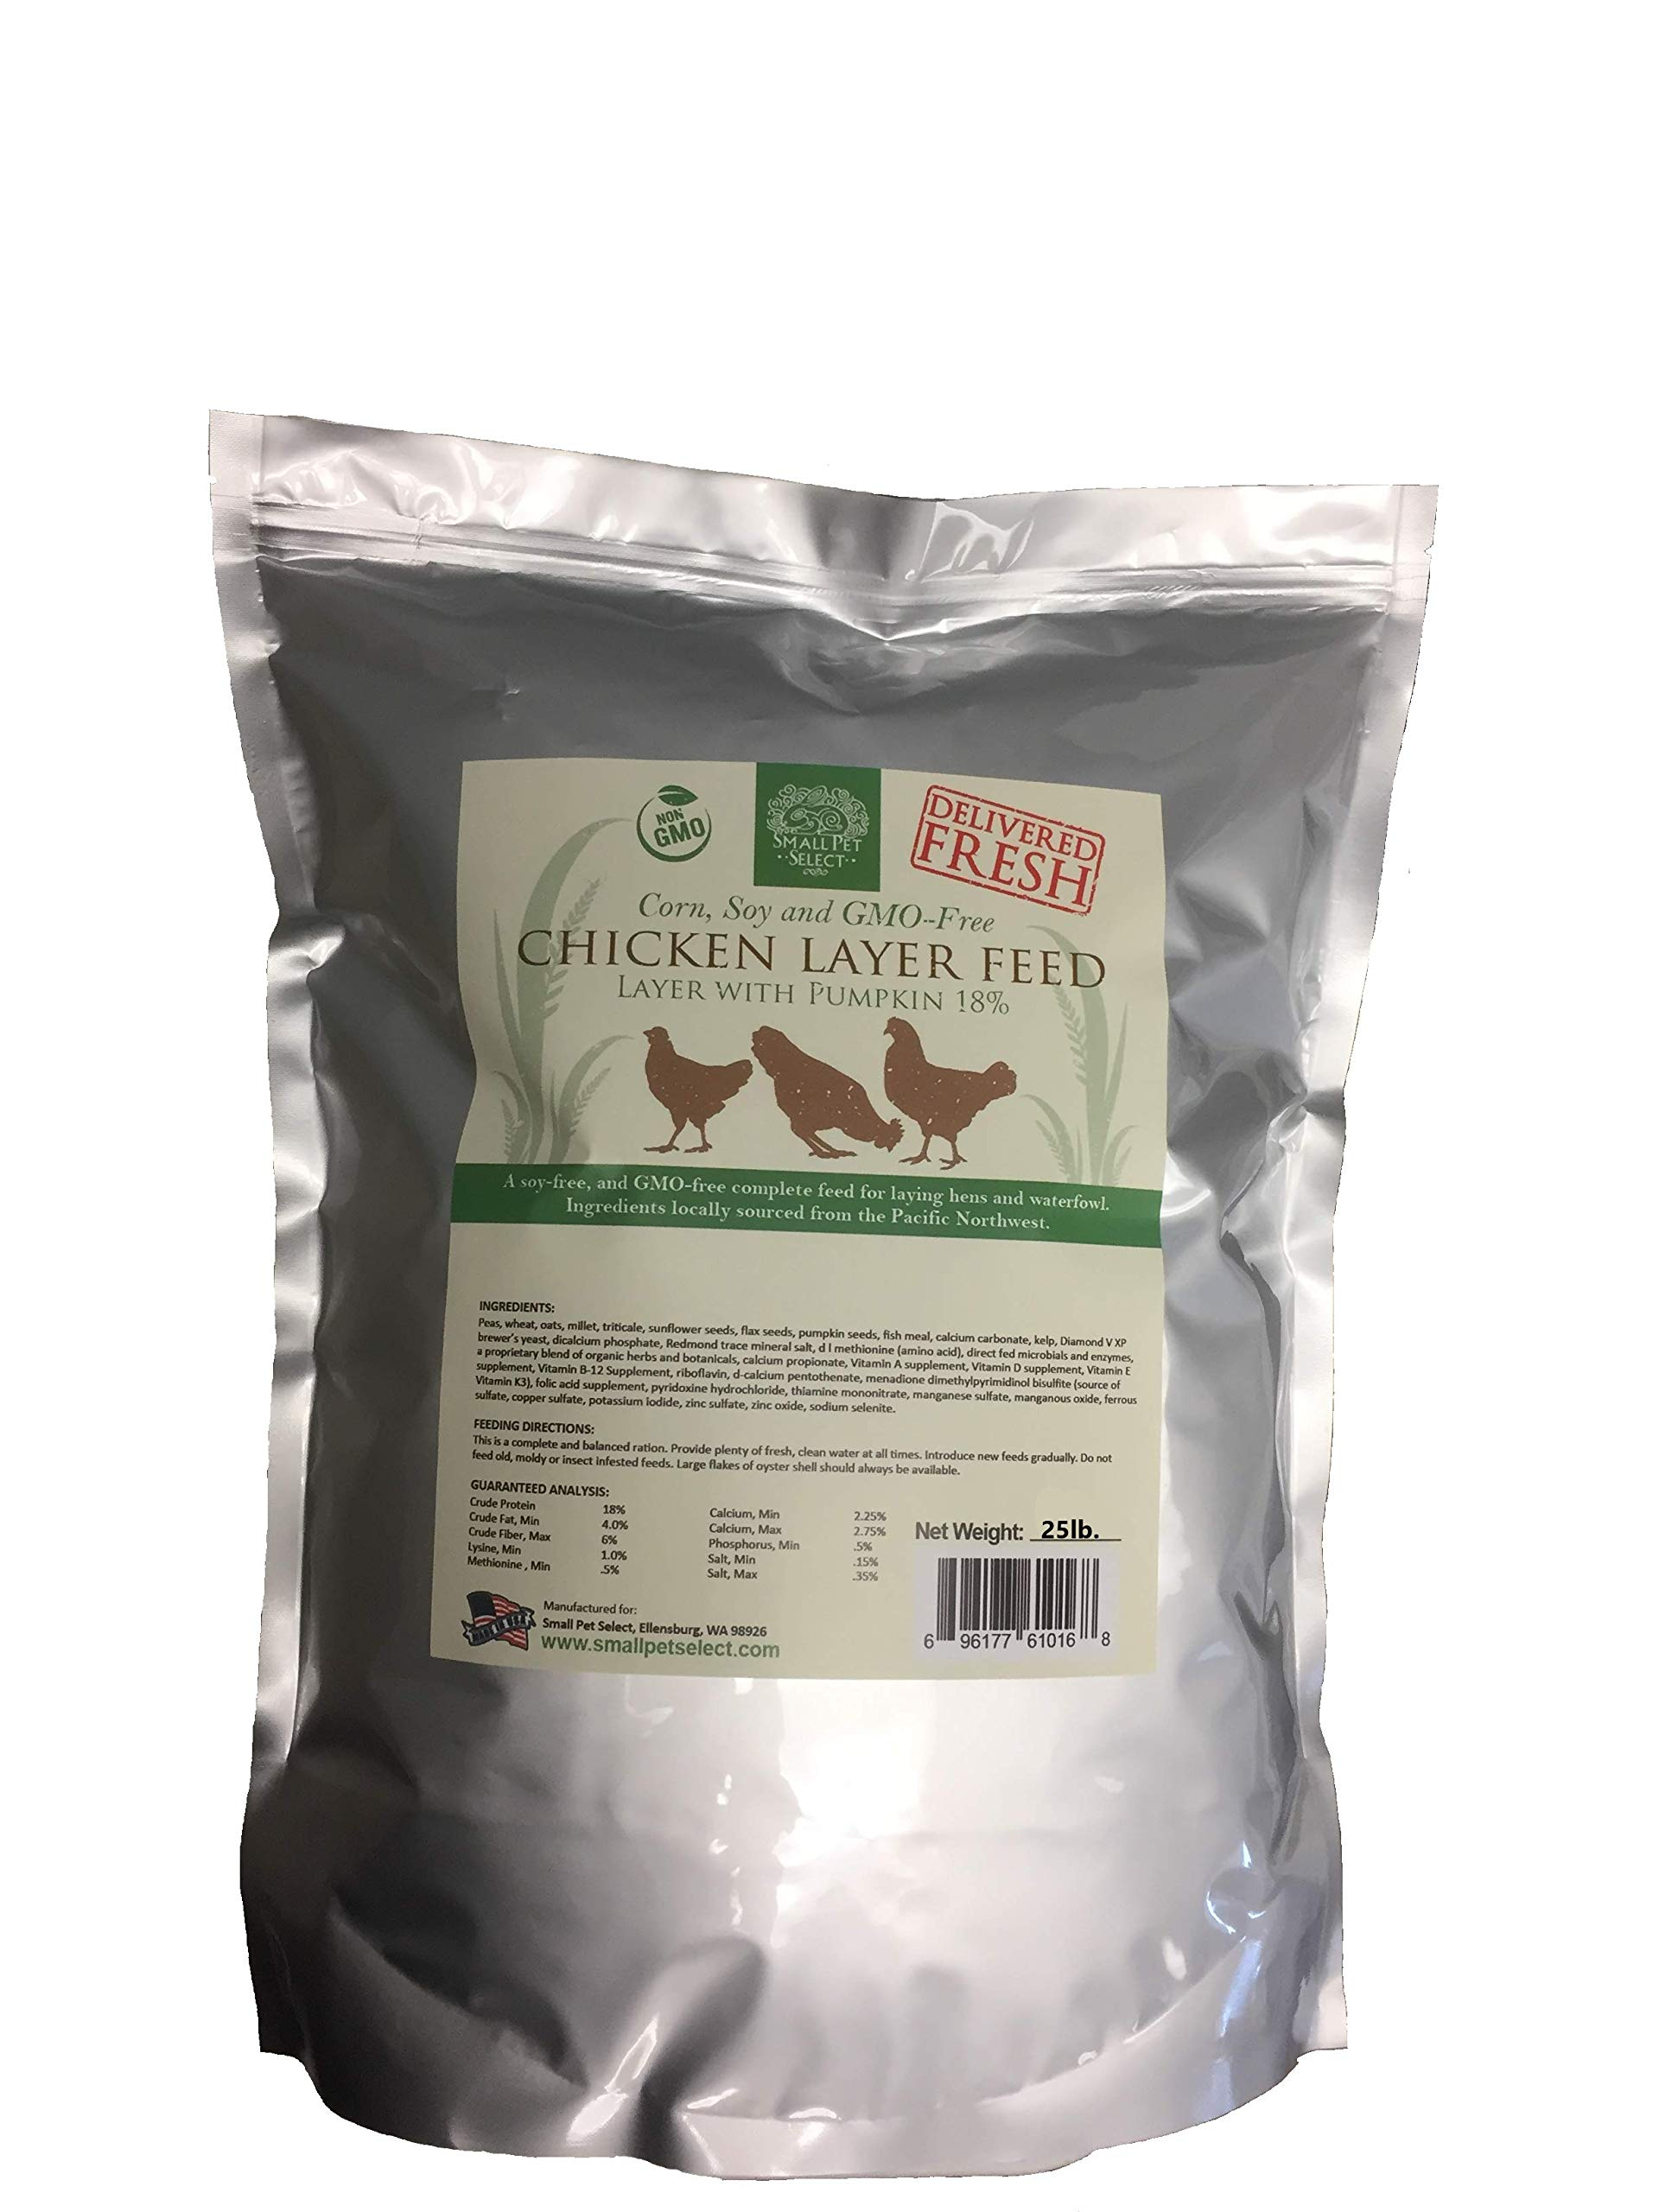 Small Pet Select Chicken Layer Feed. Non-GMO, Corn Free, Soy Free. Locally Sourced In The Pacific Northwest. Made in Small Batches Ensuring The Highest Quality Product, 25 lb by Small Pet Select